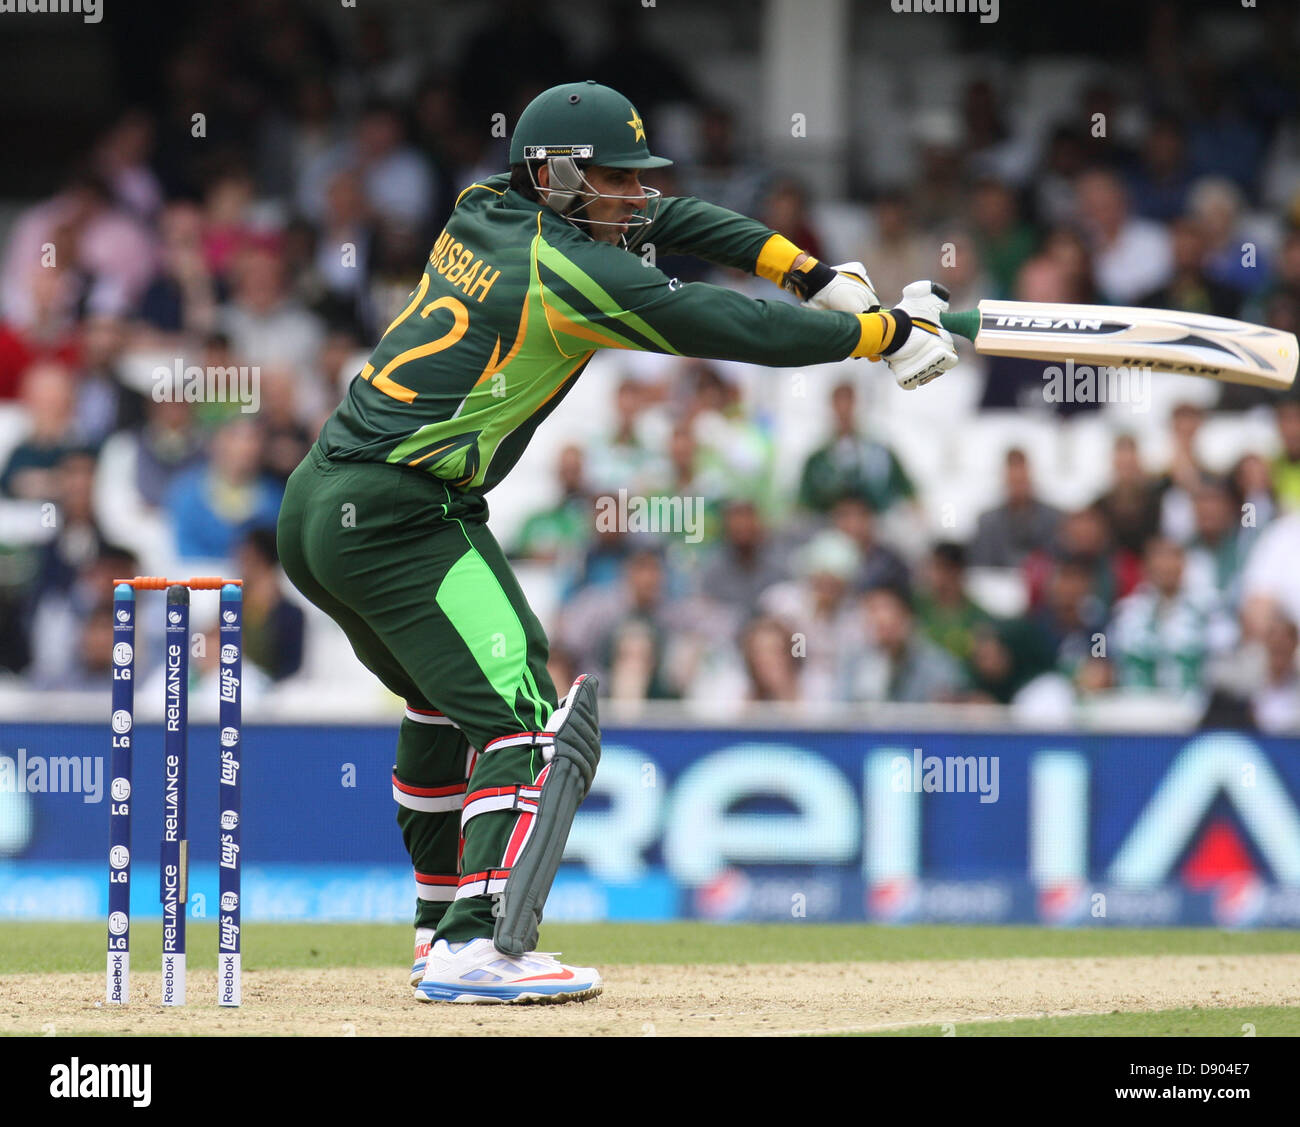 7th June 2013 Misbah Ul Haq Of Pakistan During The ICC